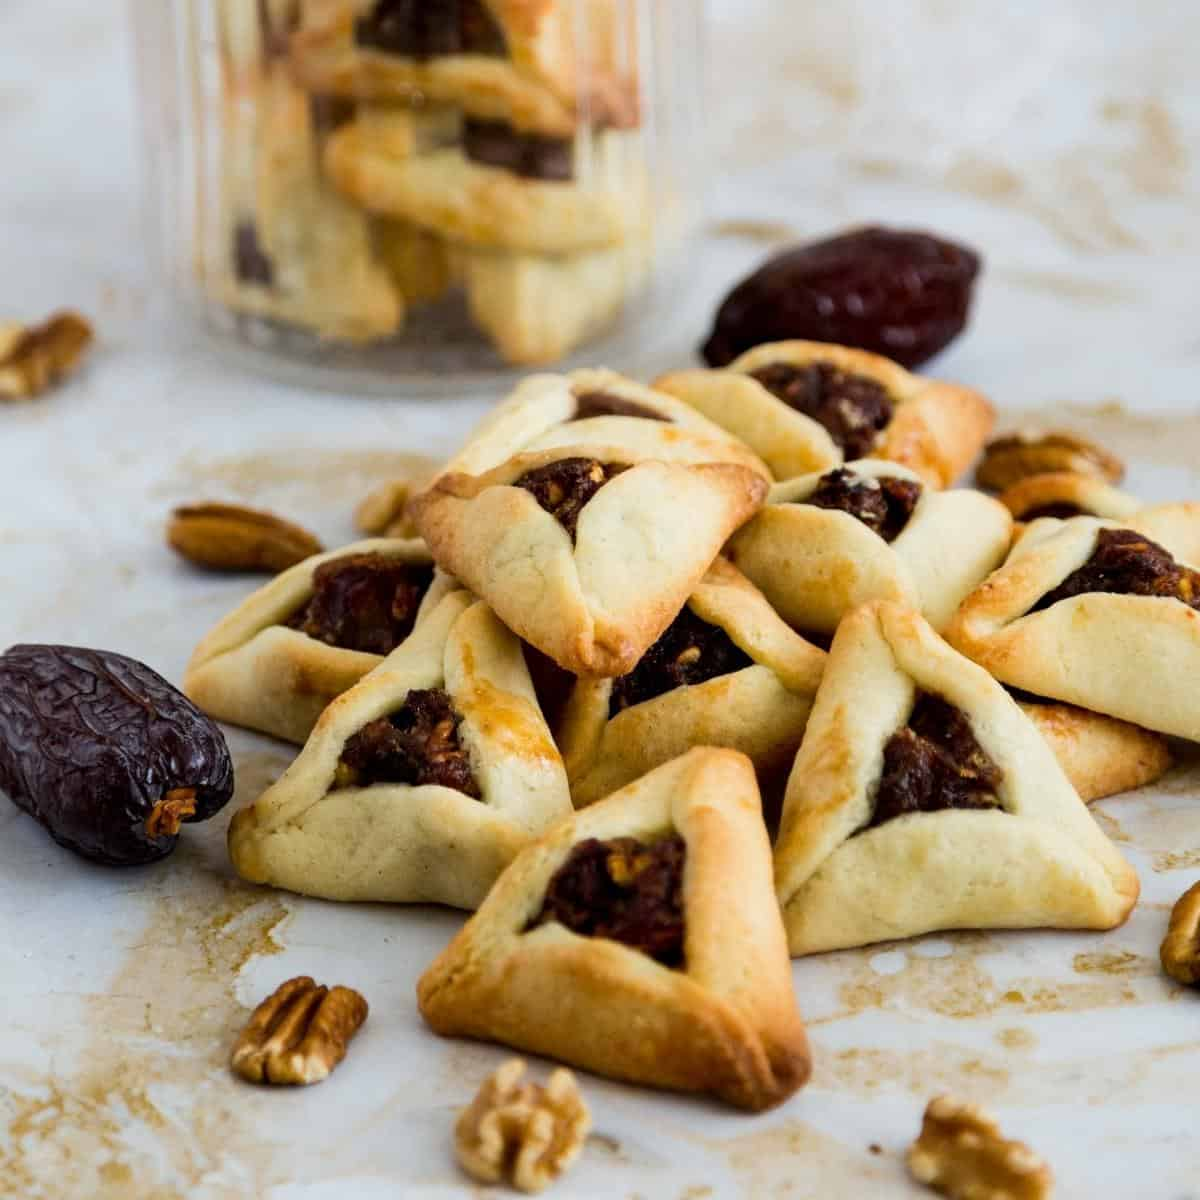 Hamantaschen purim cookies on a table